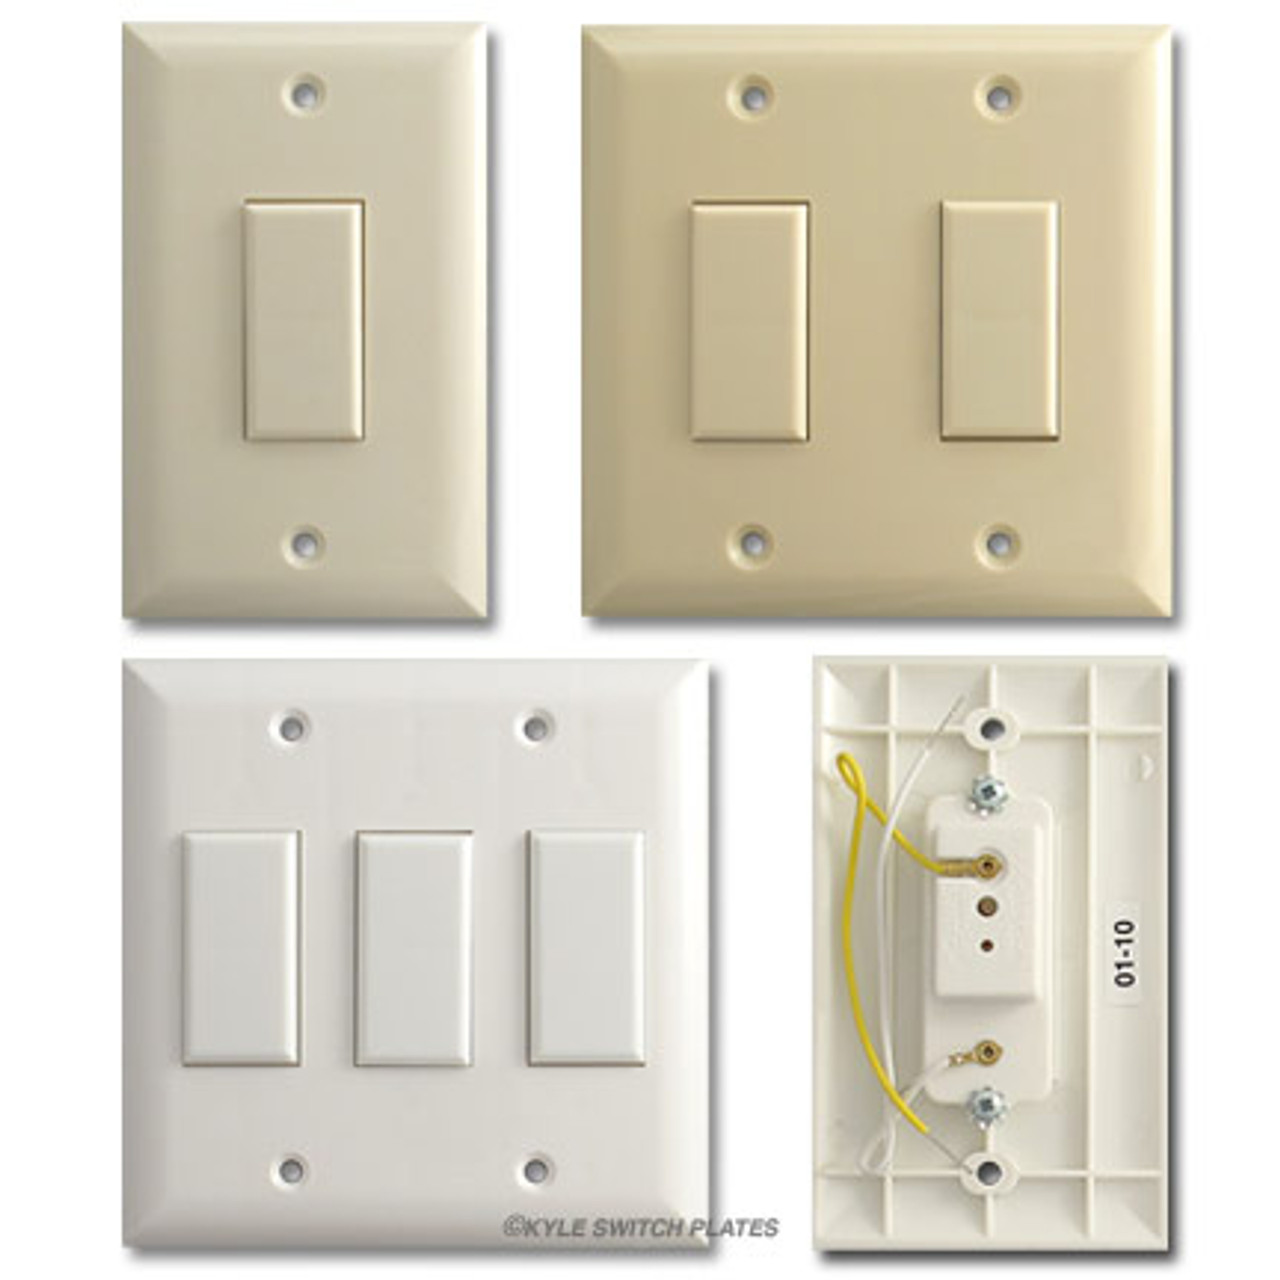 Low Voltage Light Switch Wiring Diagram from cdn11.bigcommerce.com